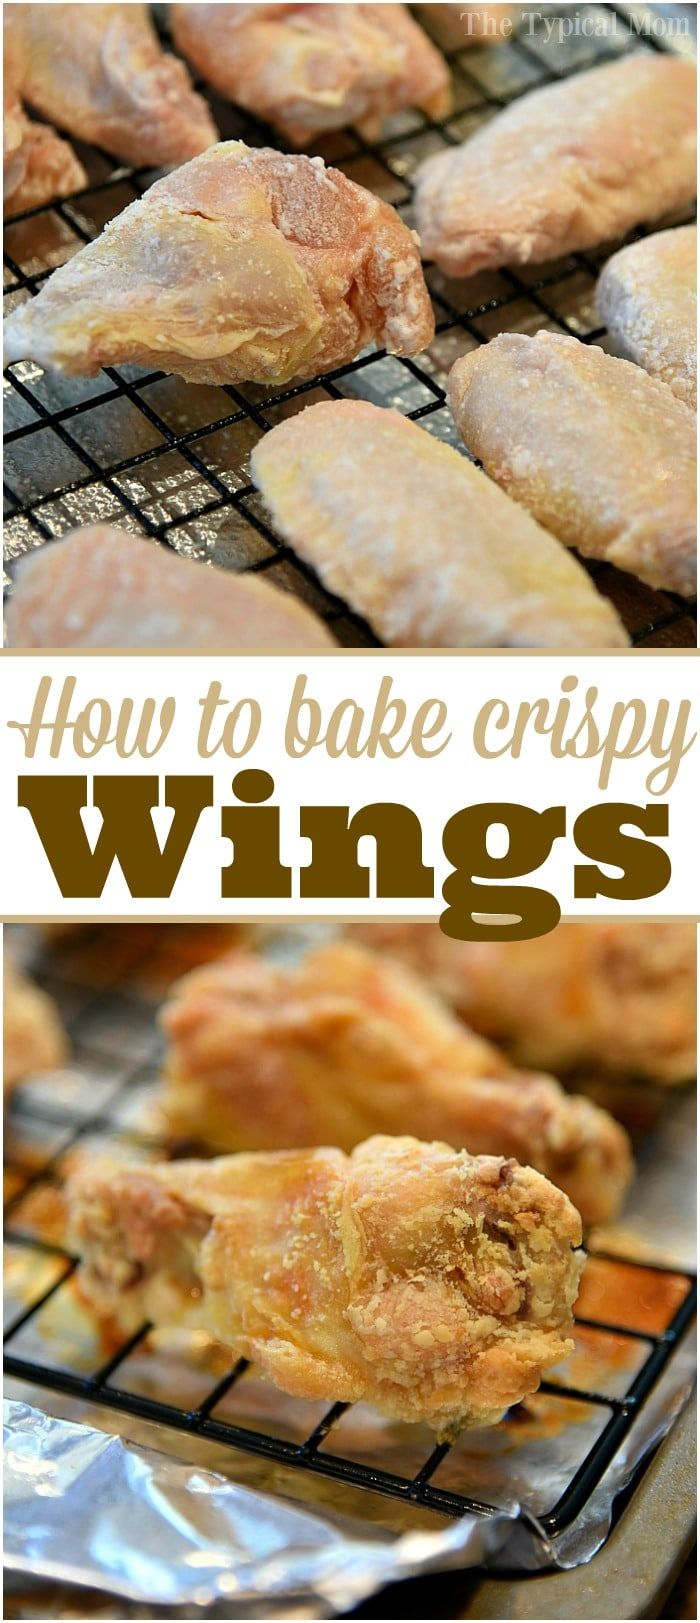 How to bake crispy chicken wings in the oven! We make these all the time now that they come out crunchy and crispy like this! via @thetypicalmom